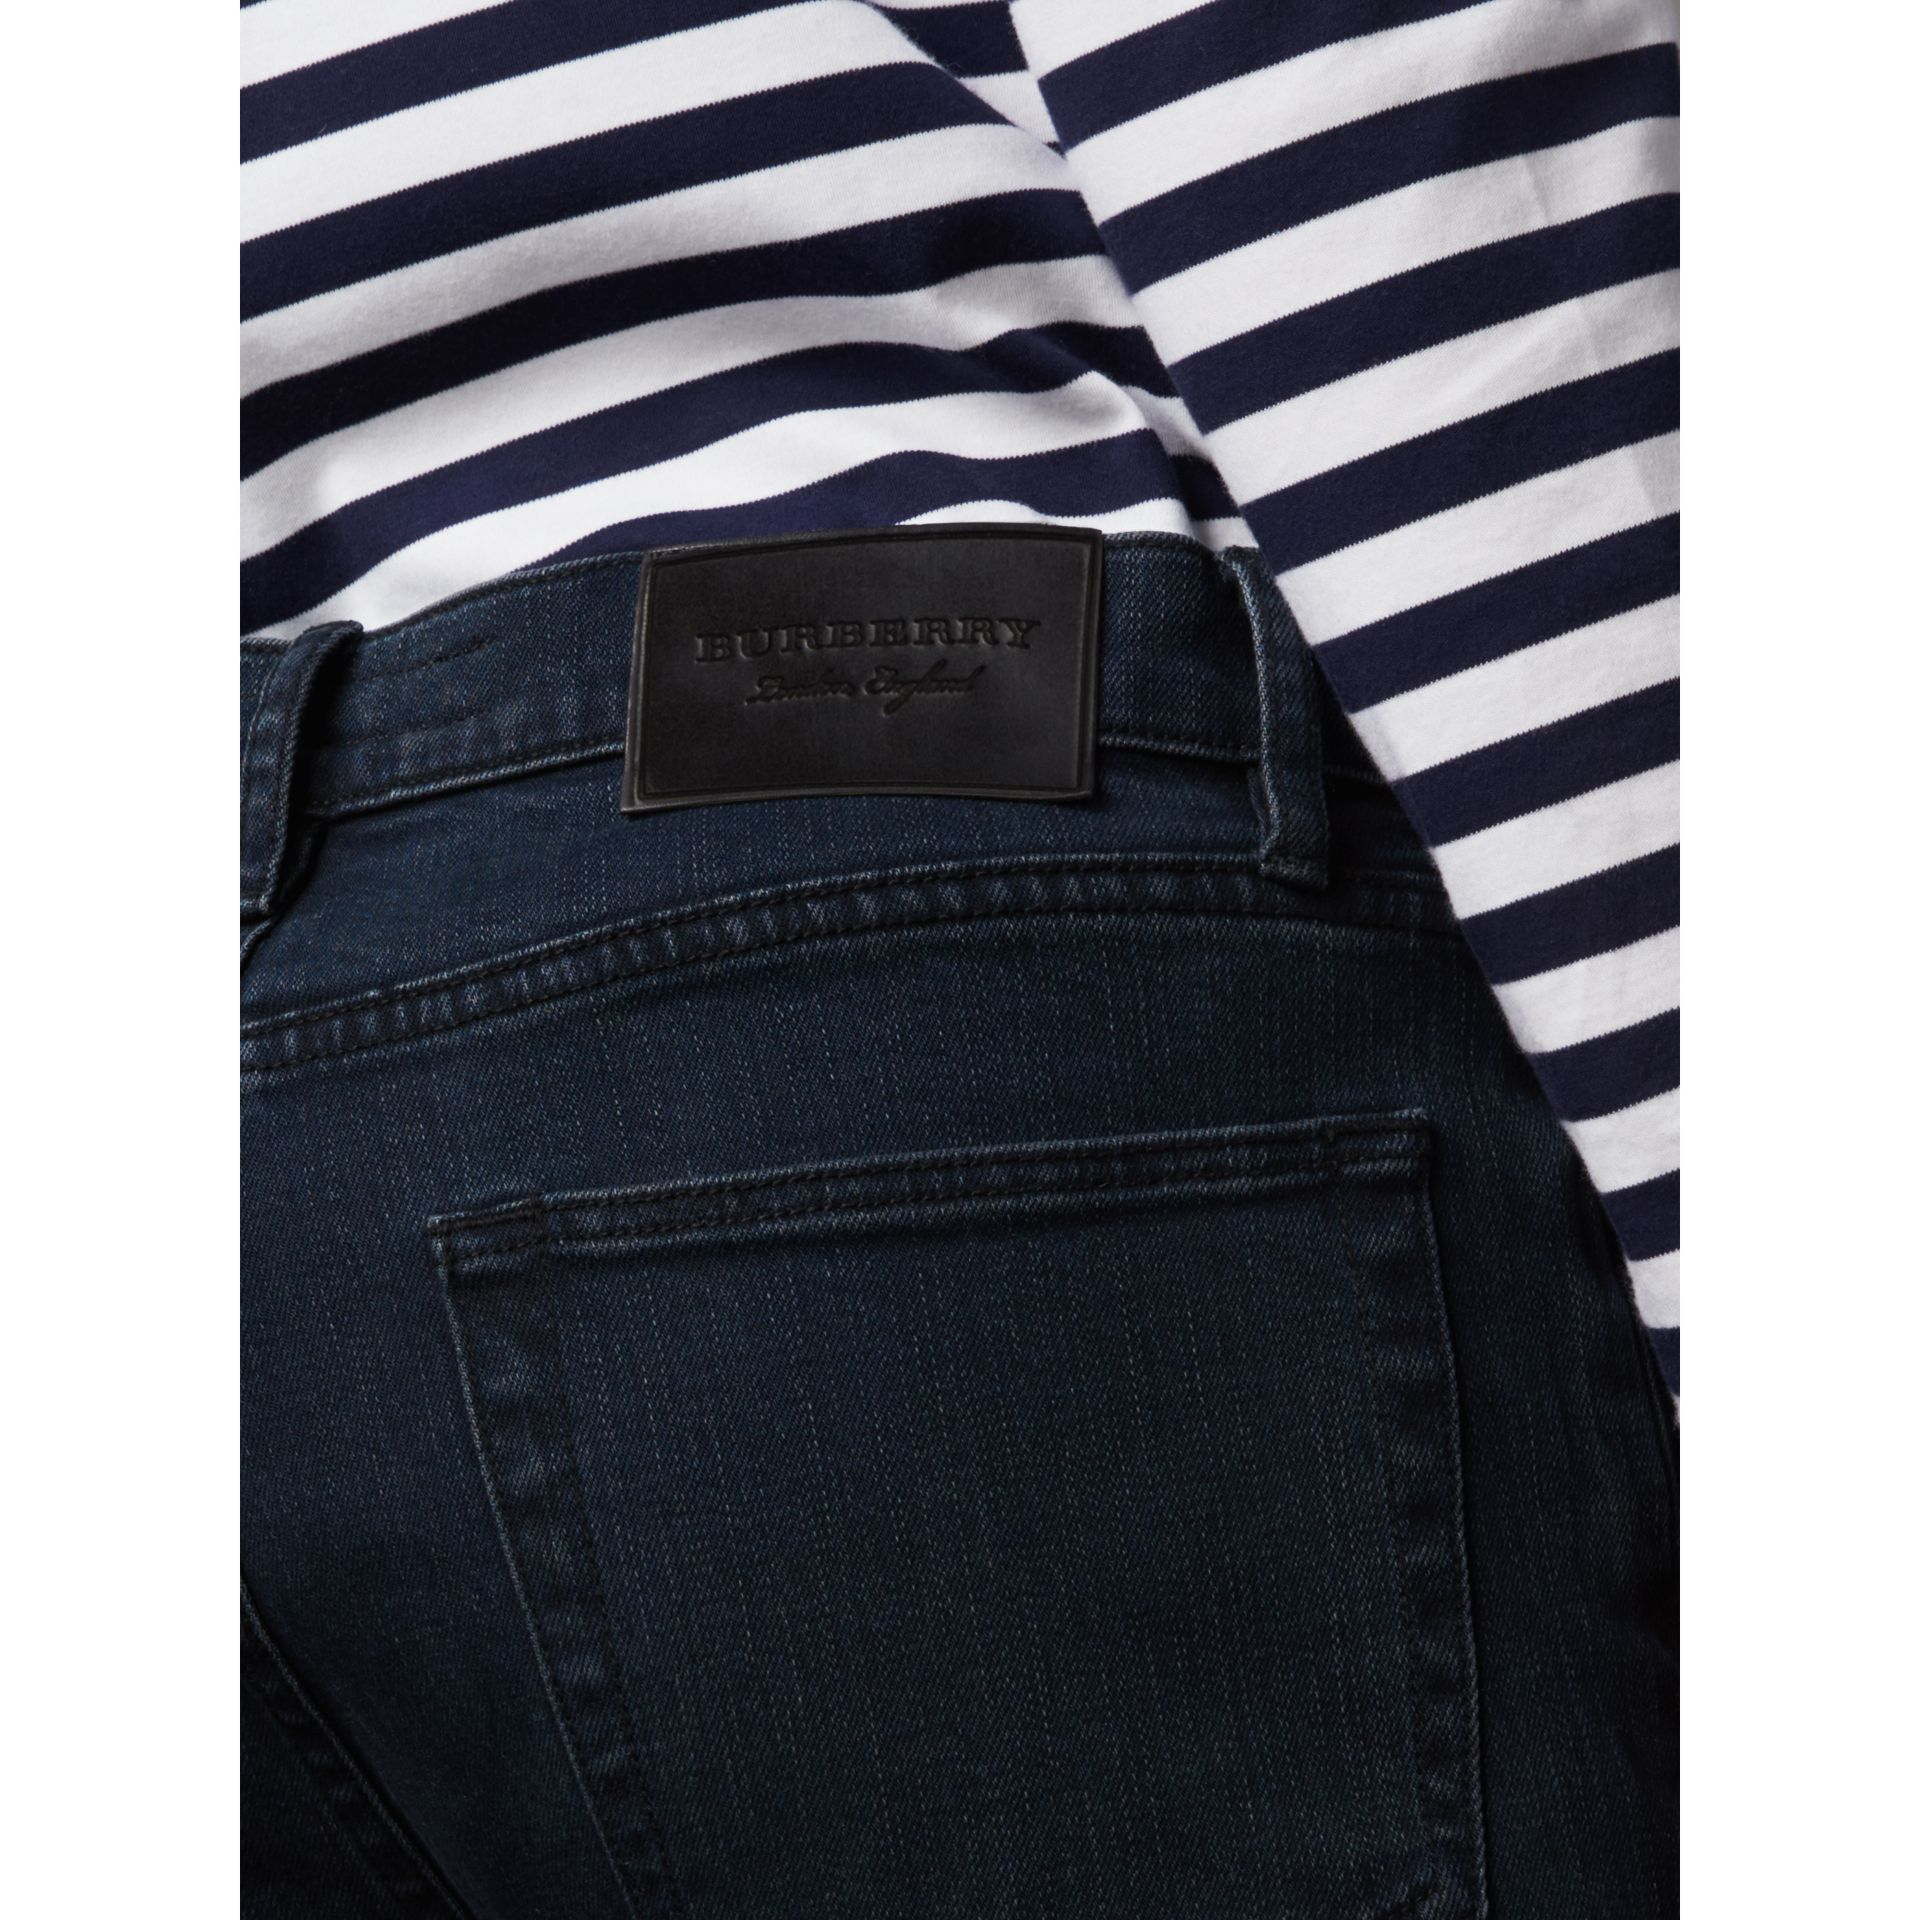 Slim Fit Stretch Denim Jeans in Dark Indigo - Men | Burberry Australia - gallery image 1